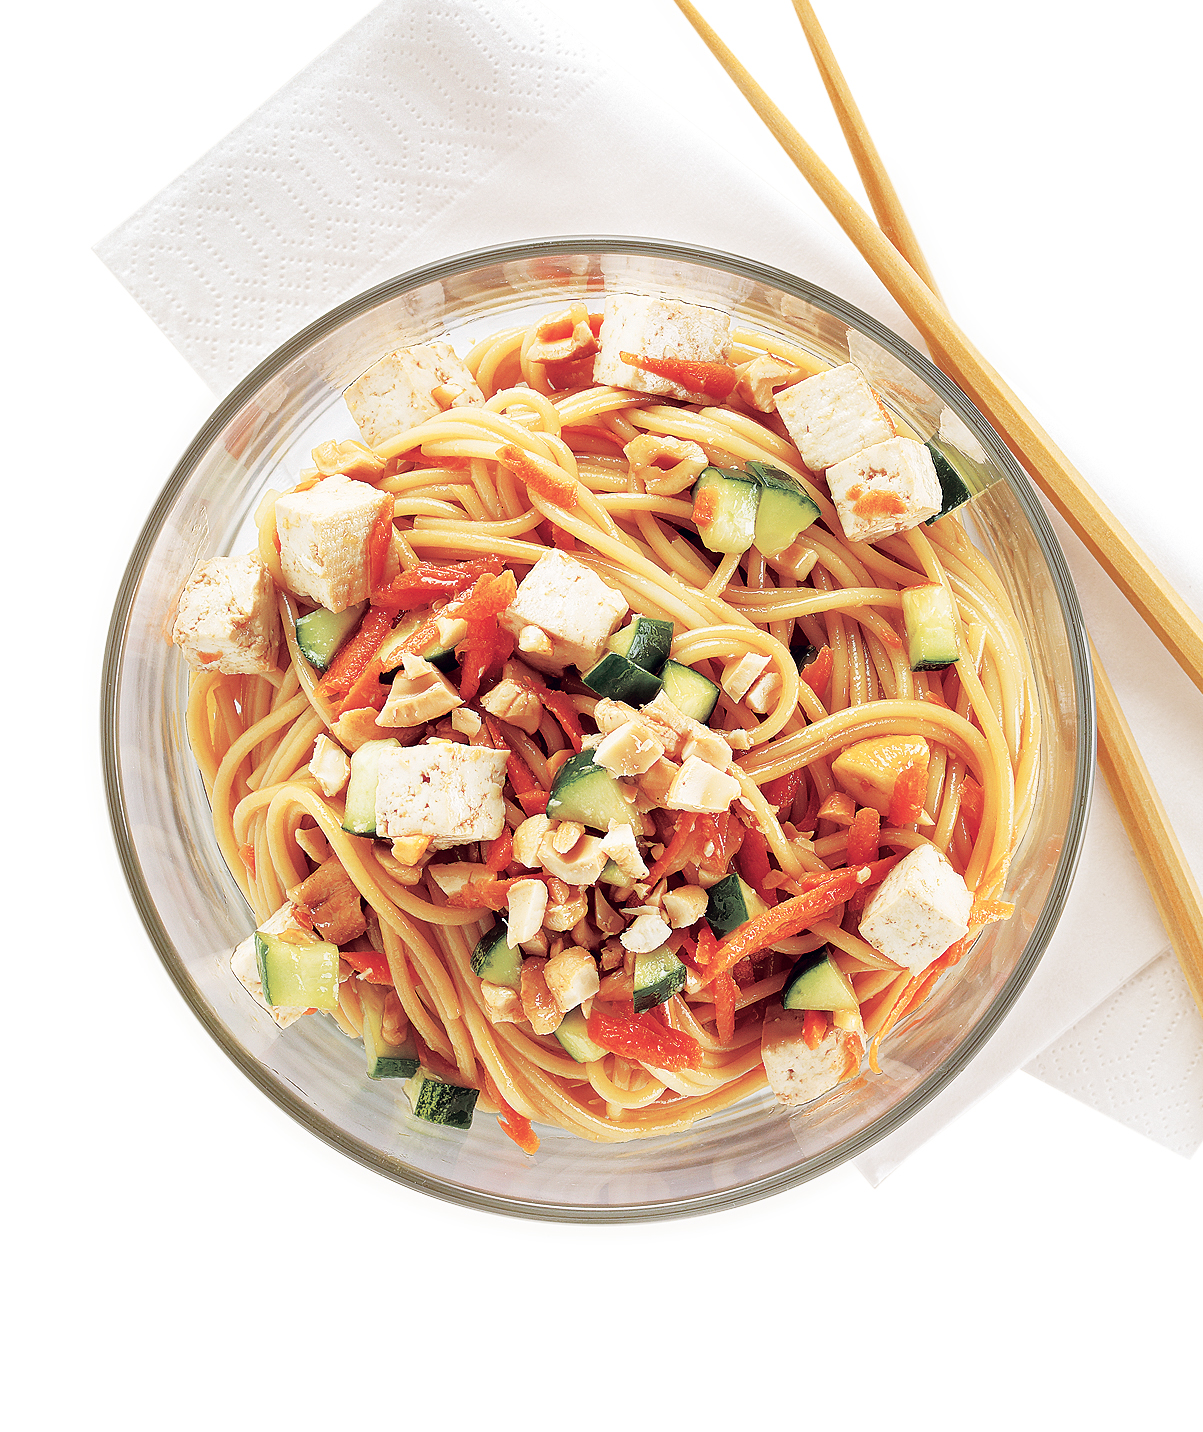 Cool Asian Noodles With Tofu and Cashews